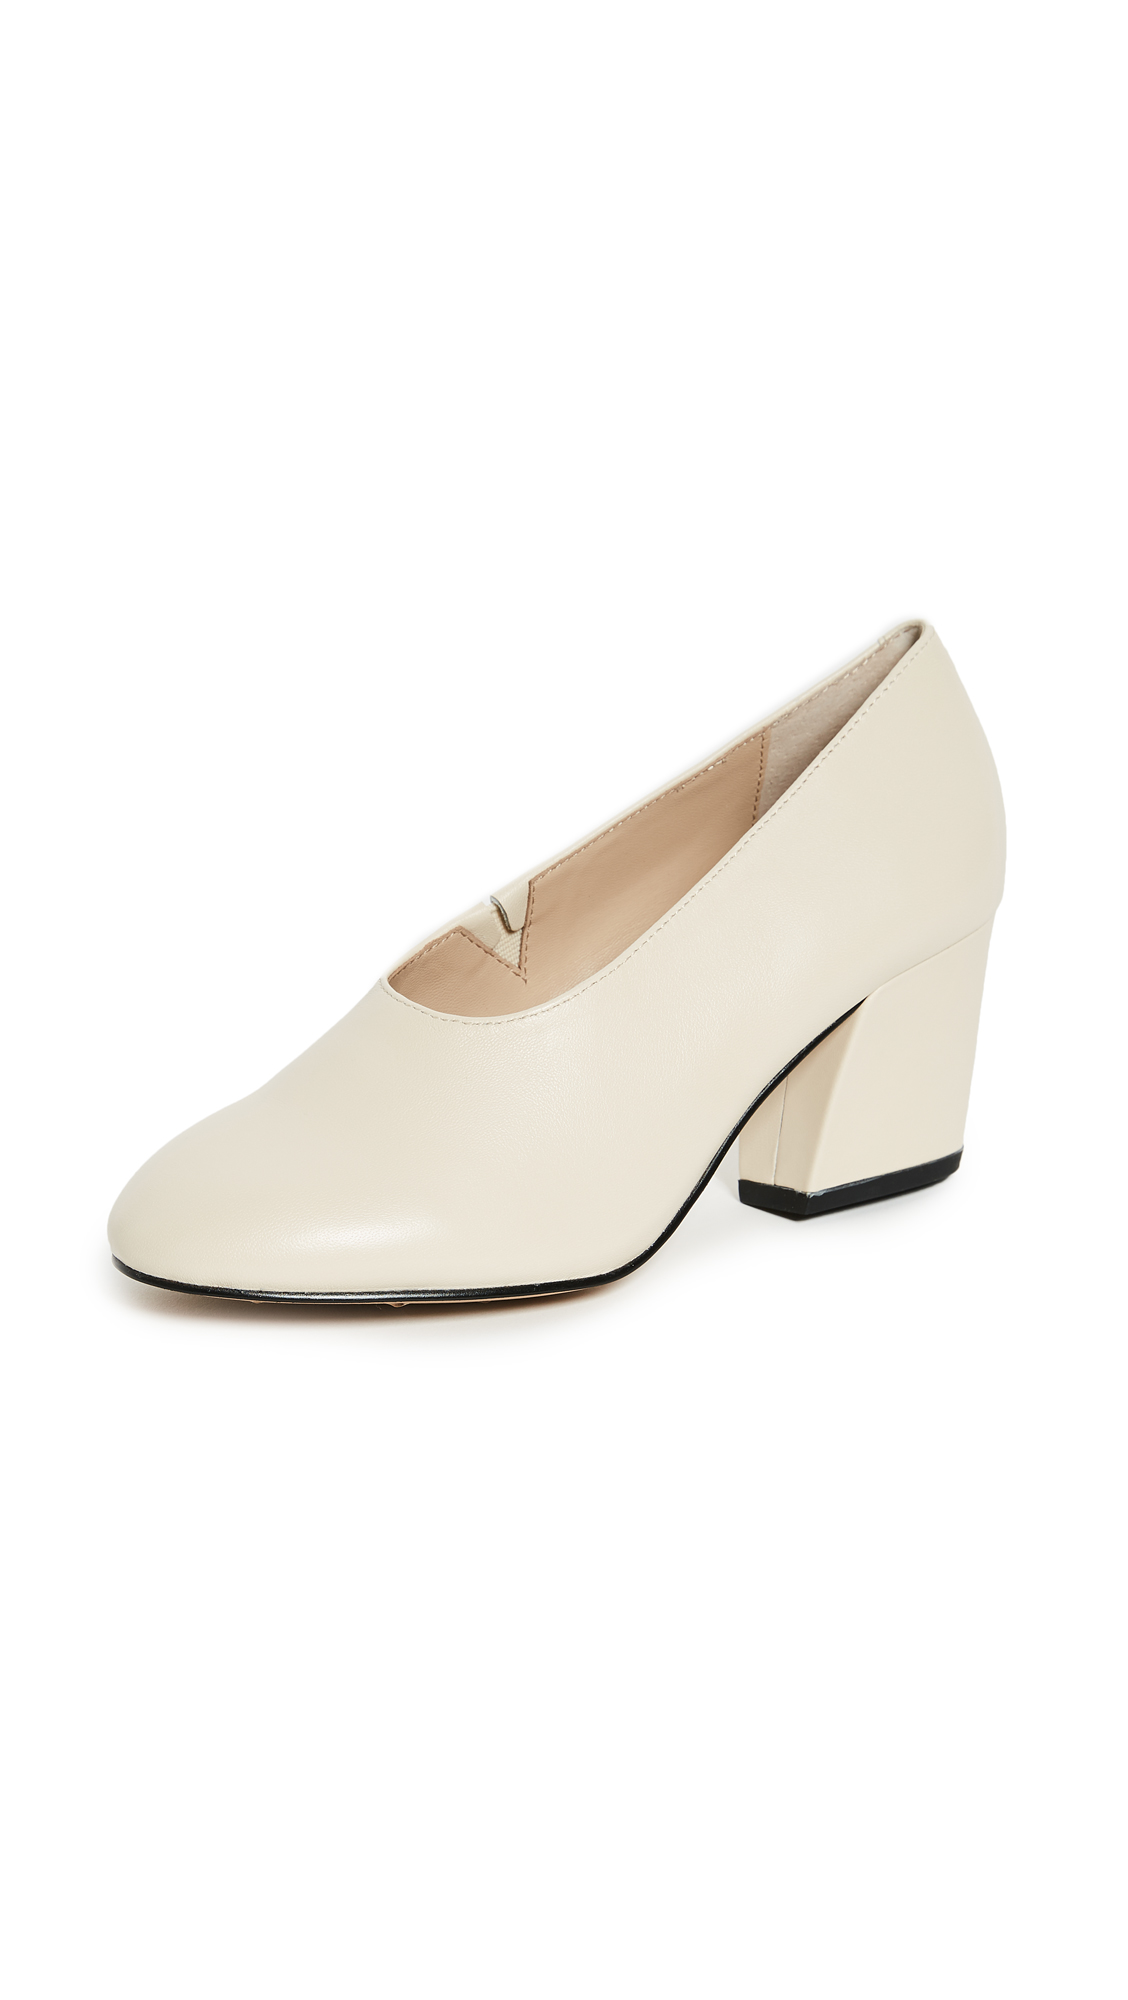 Botkier Haven Block Heel Pumps - Cream